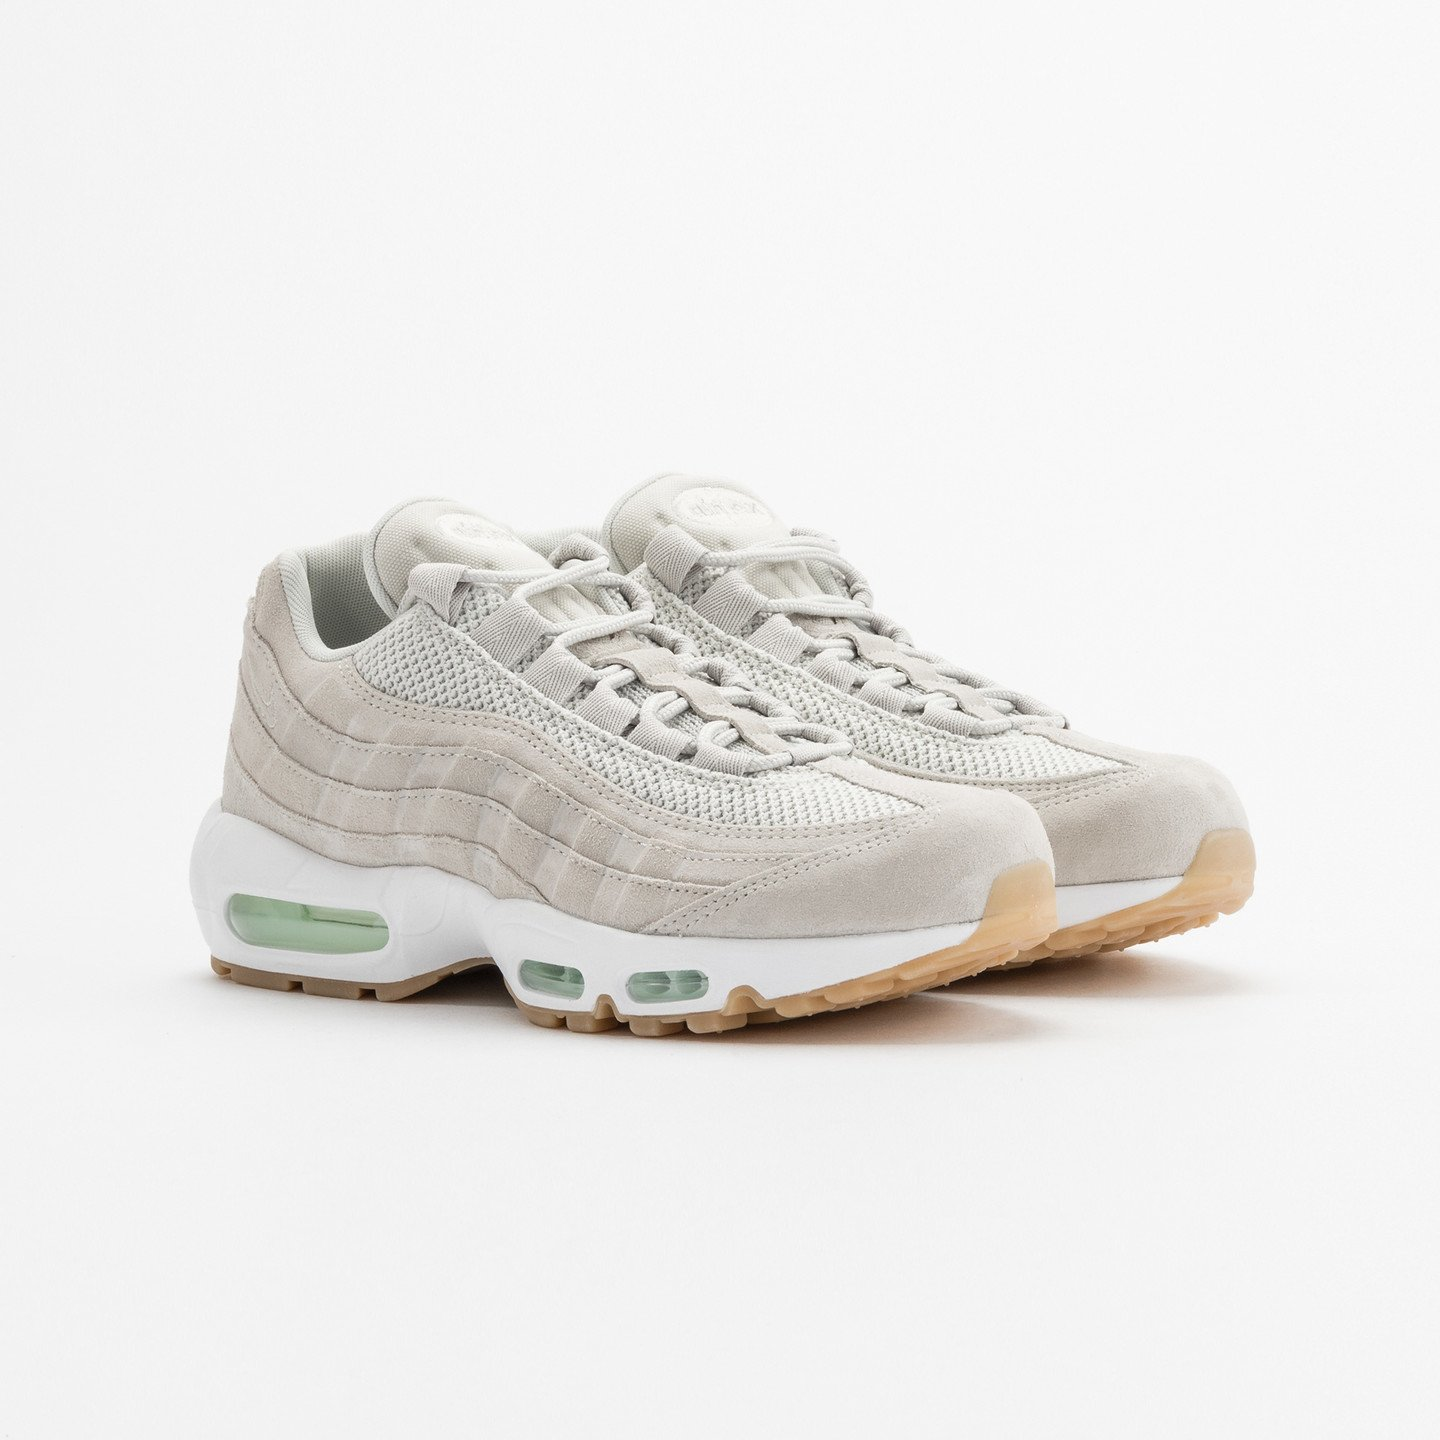 Nike Air Max 95 Premium Light Bone / Gum 538416-003